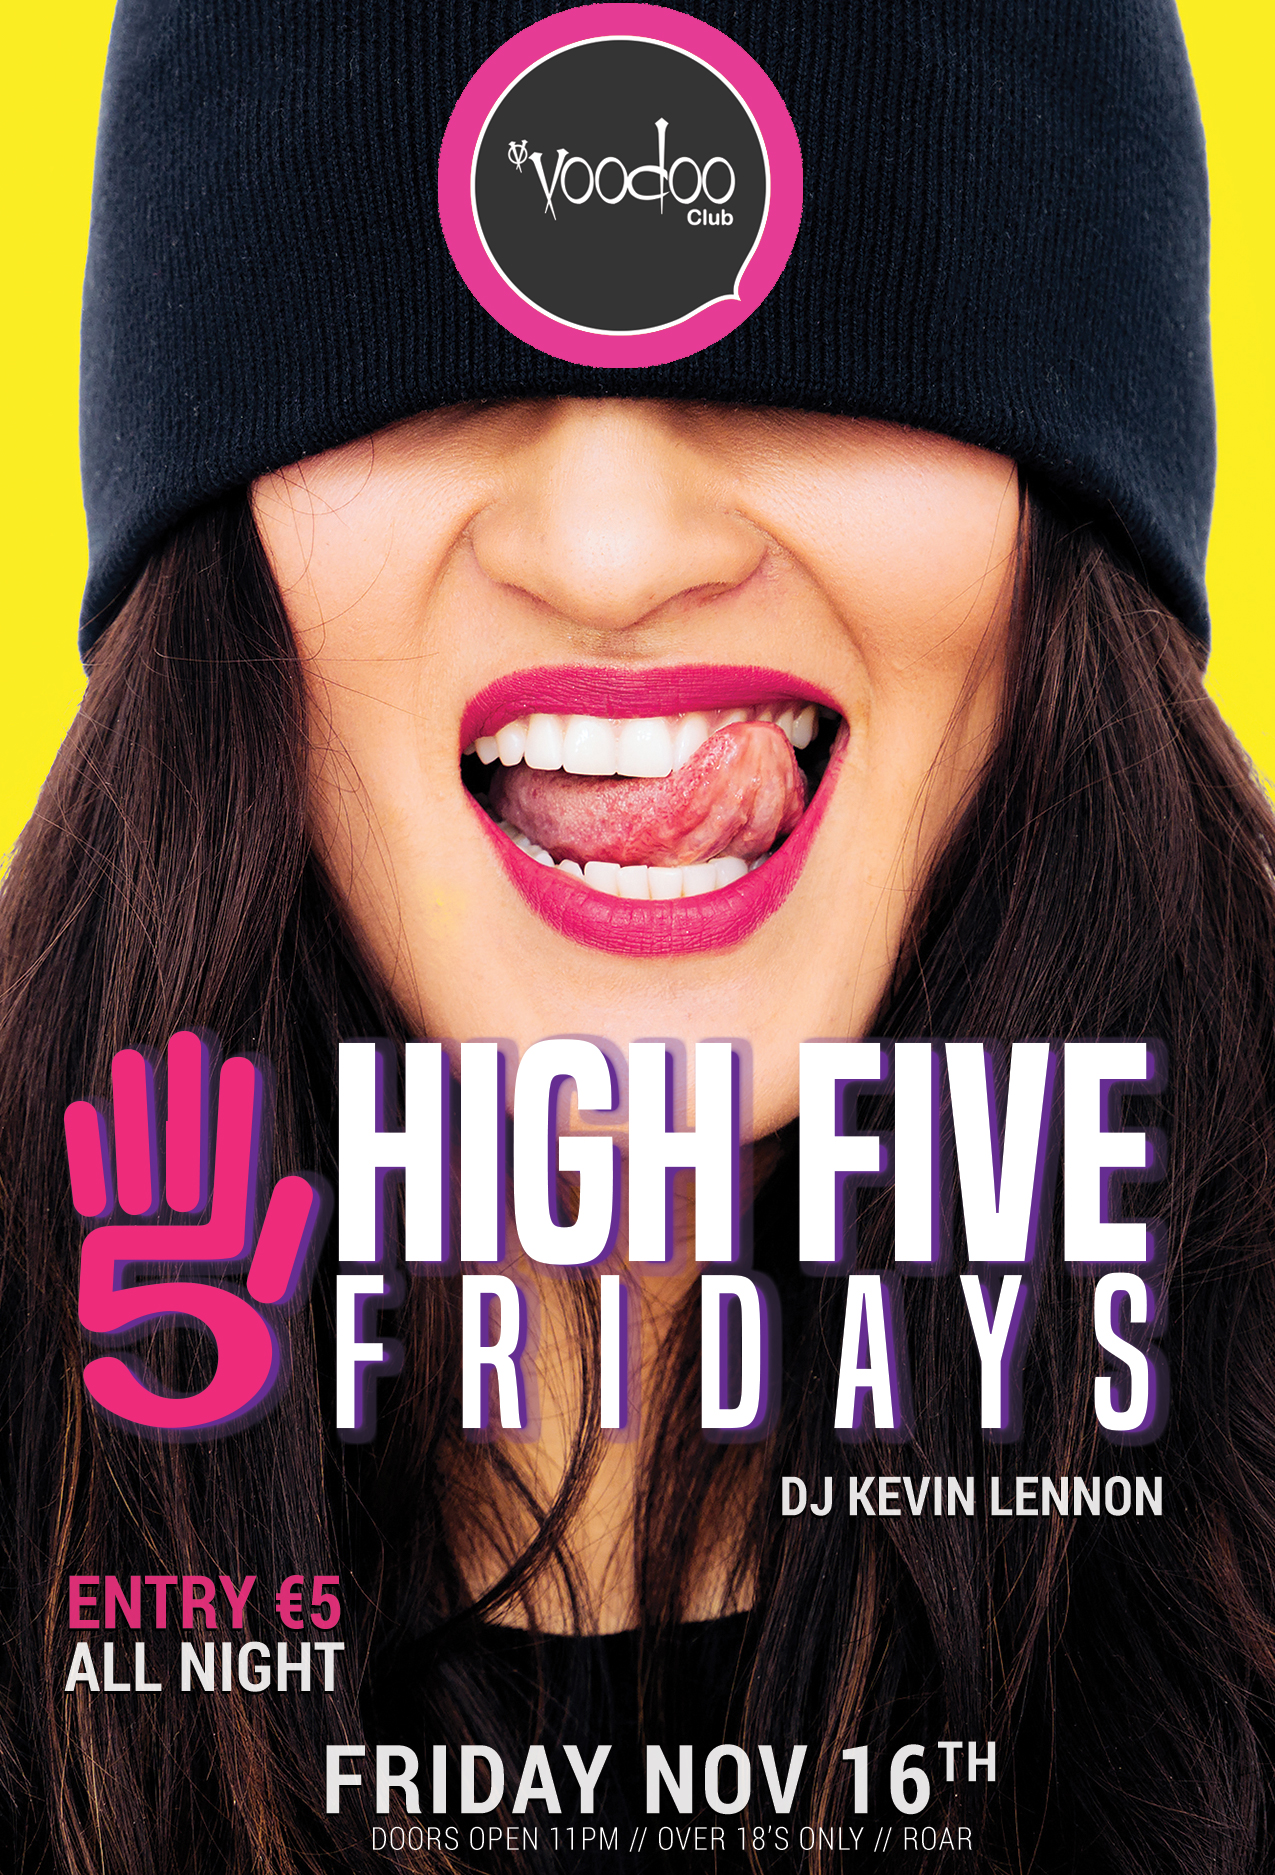 voodoo-venue---HIGH-FIVE-FRIDAYS-NOV-16-2018.jpg